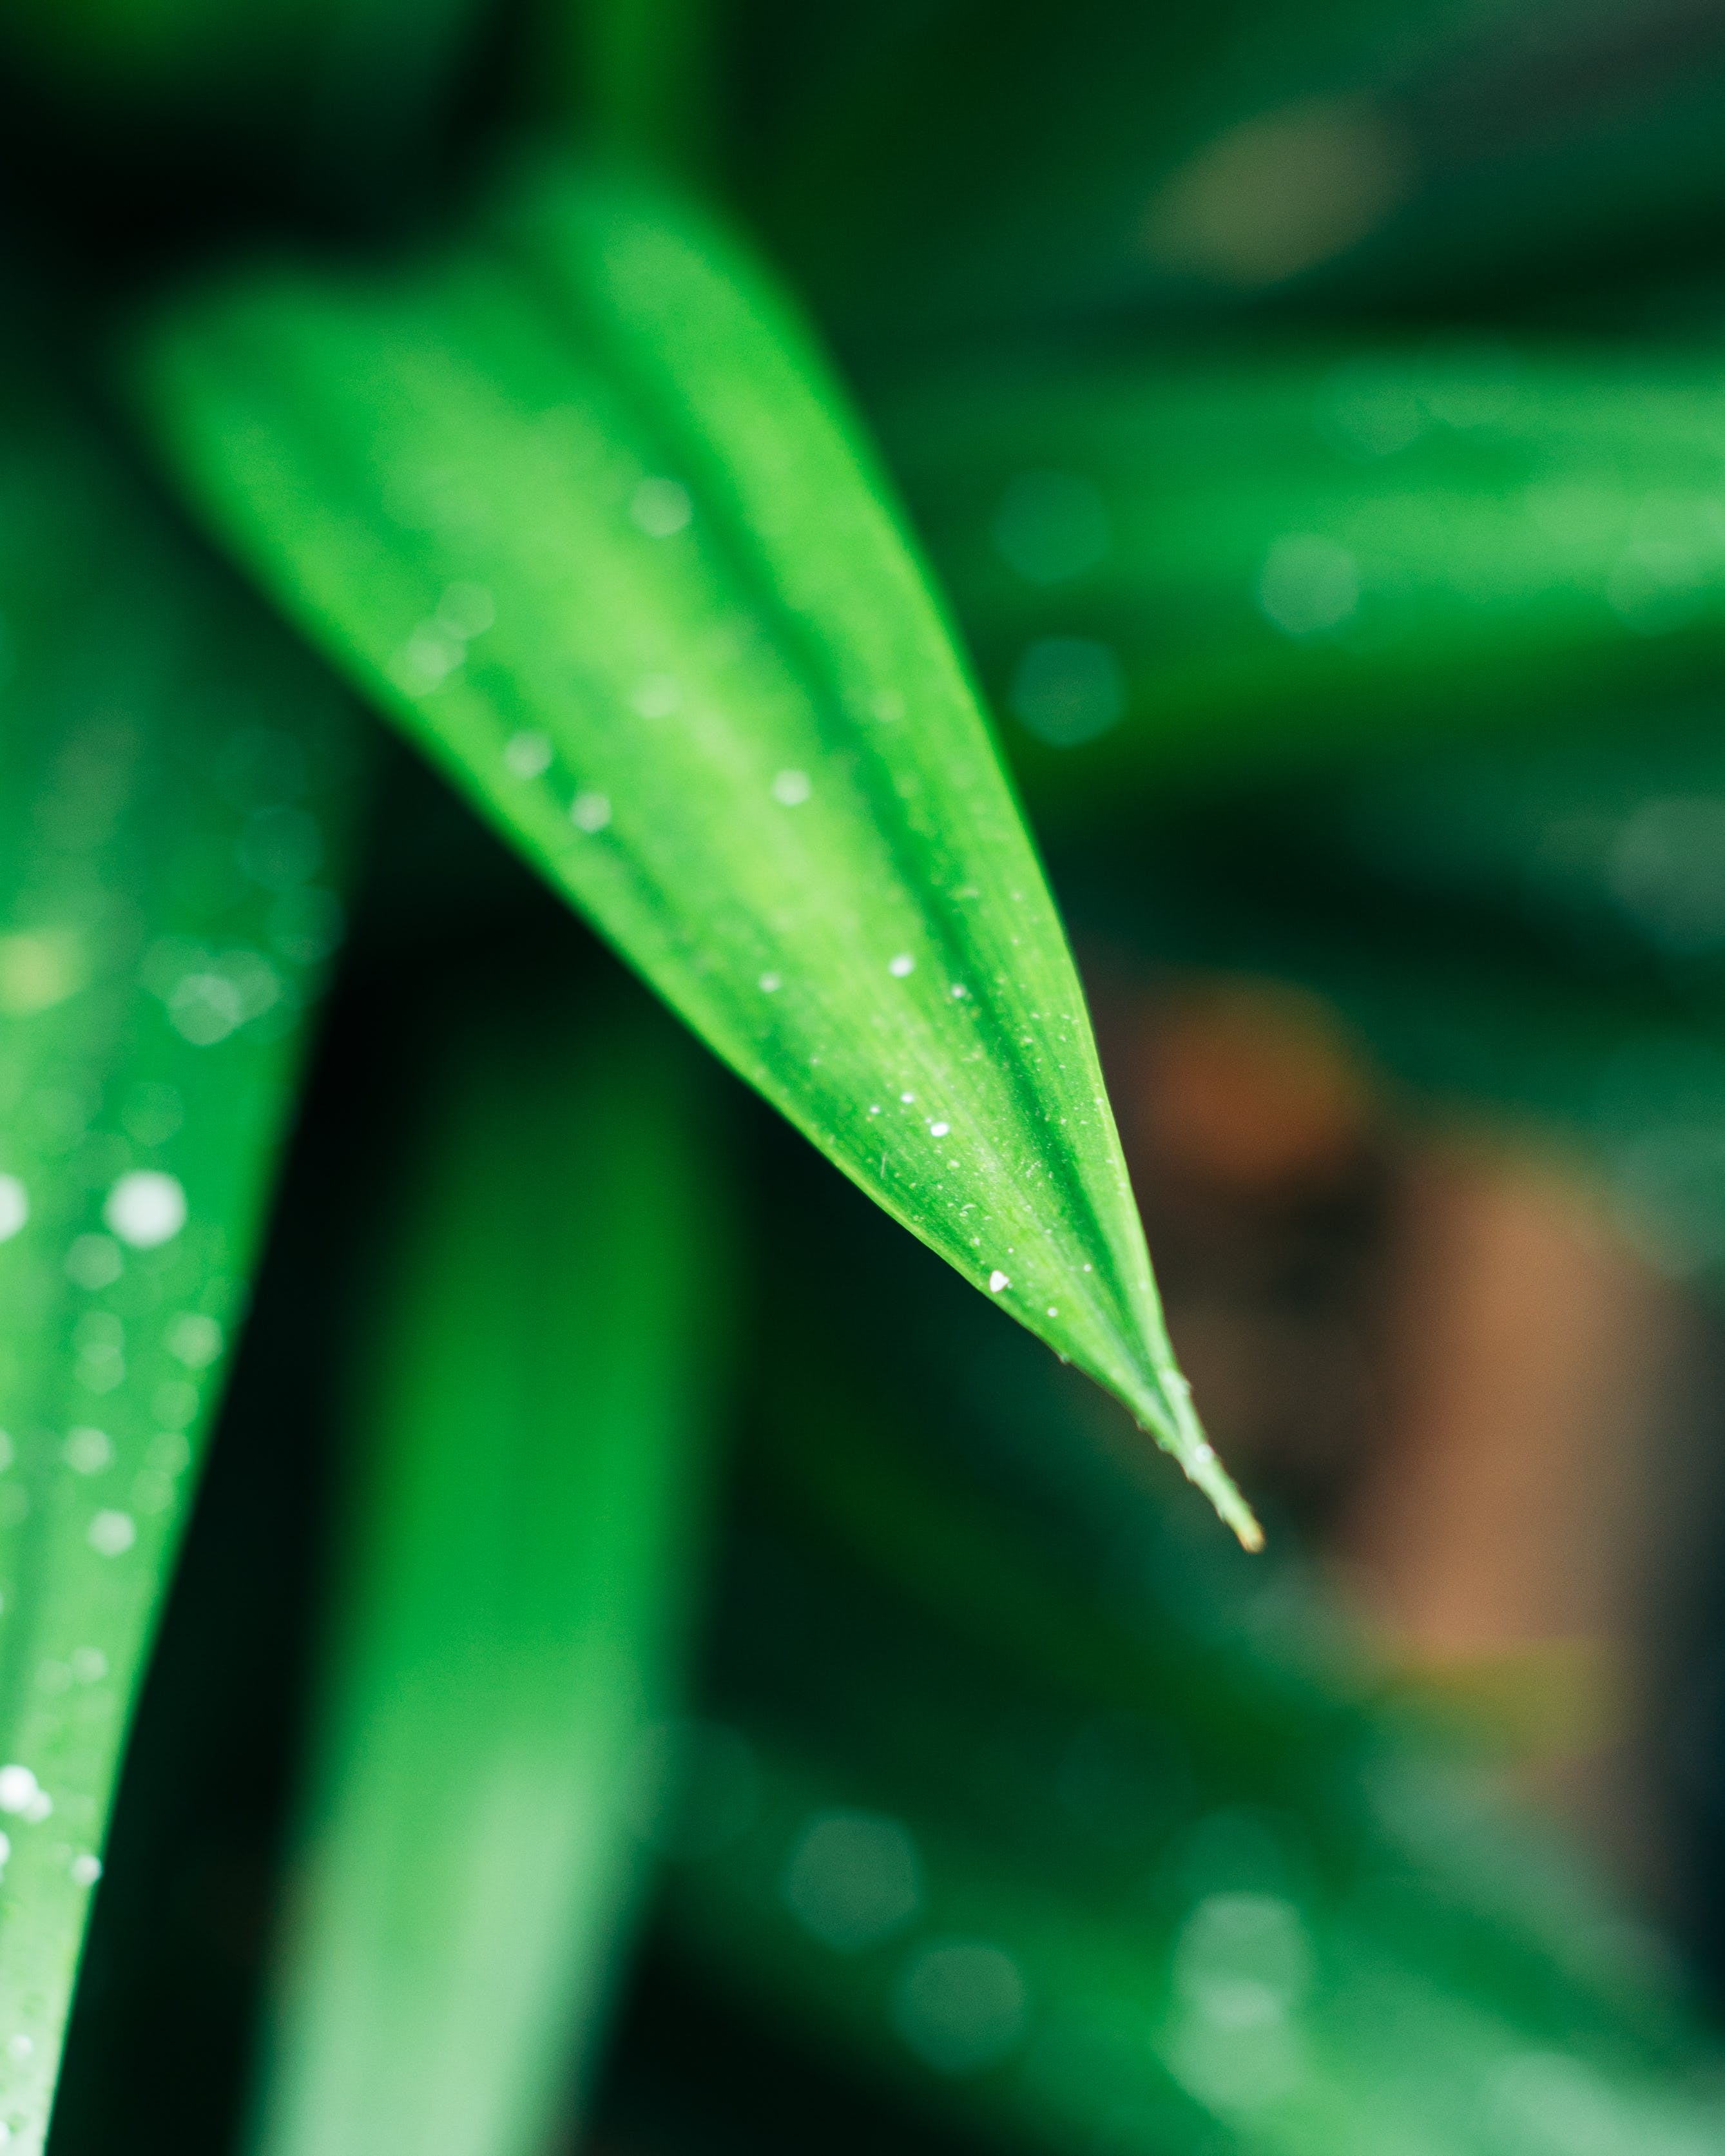 Closeup Photography of Green Leafed Plant With Water Dew